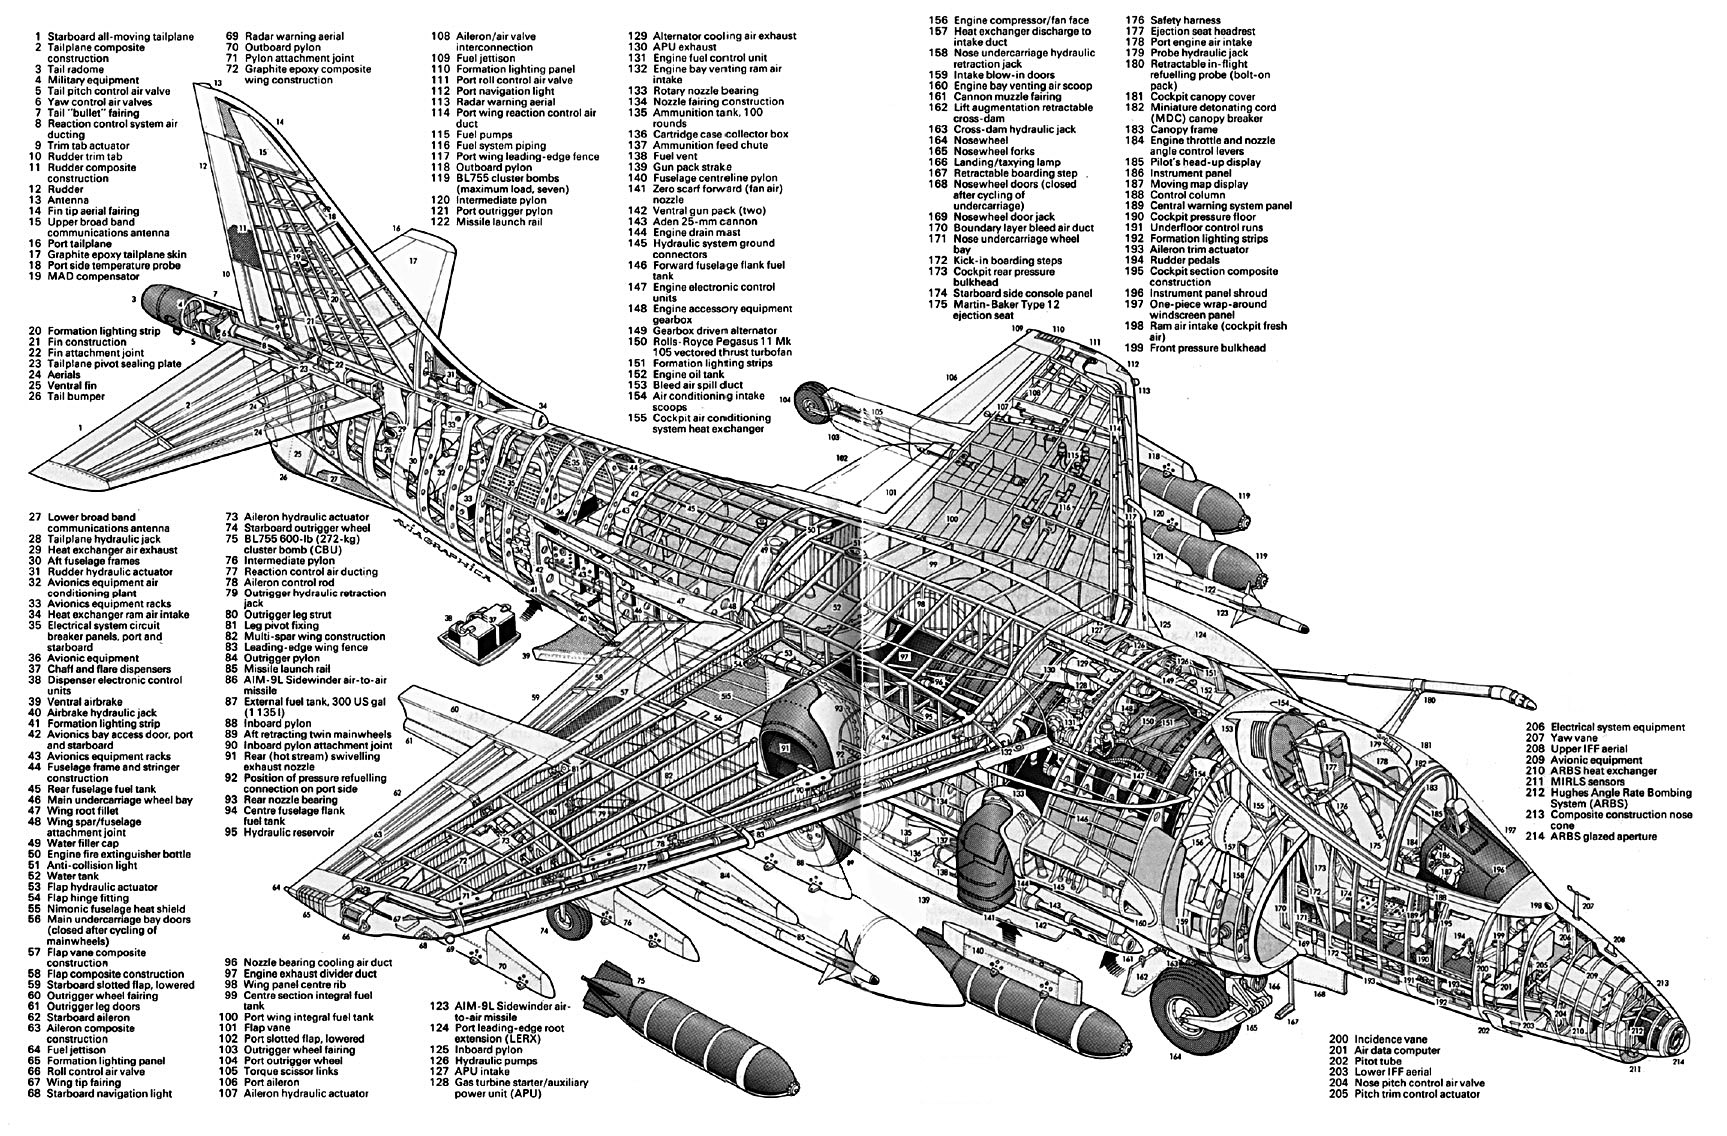 gx_8446] aircraft hydraulic system diagram wiring harness wiring diagram  download diagram  epete pical clesi scoba mohammedshrine librar wiring 101